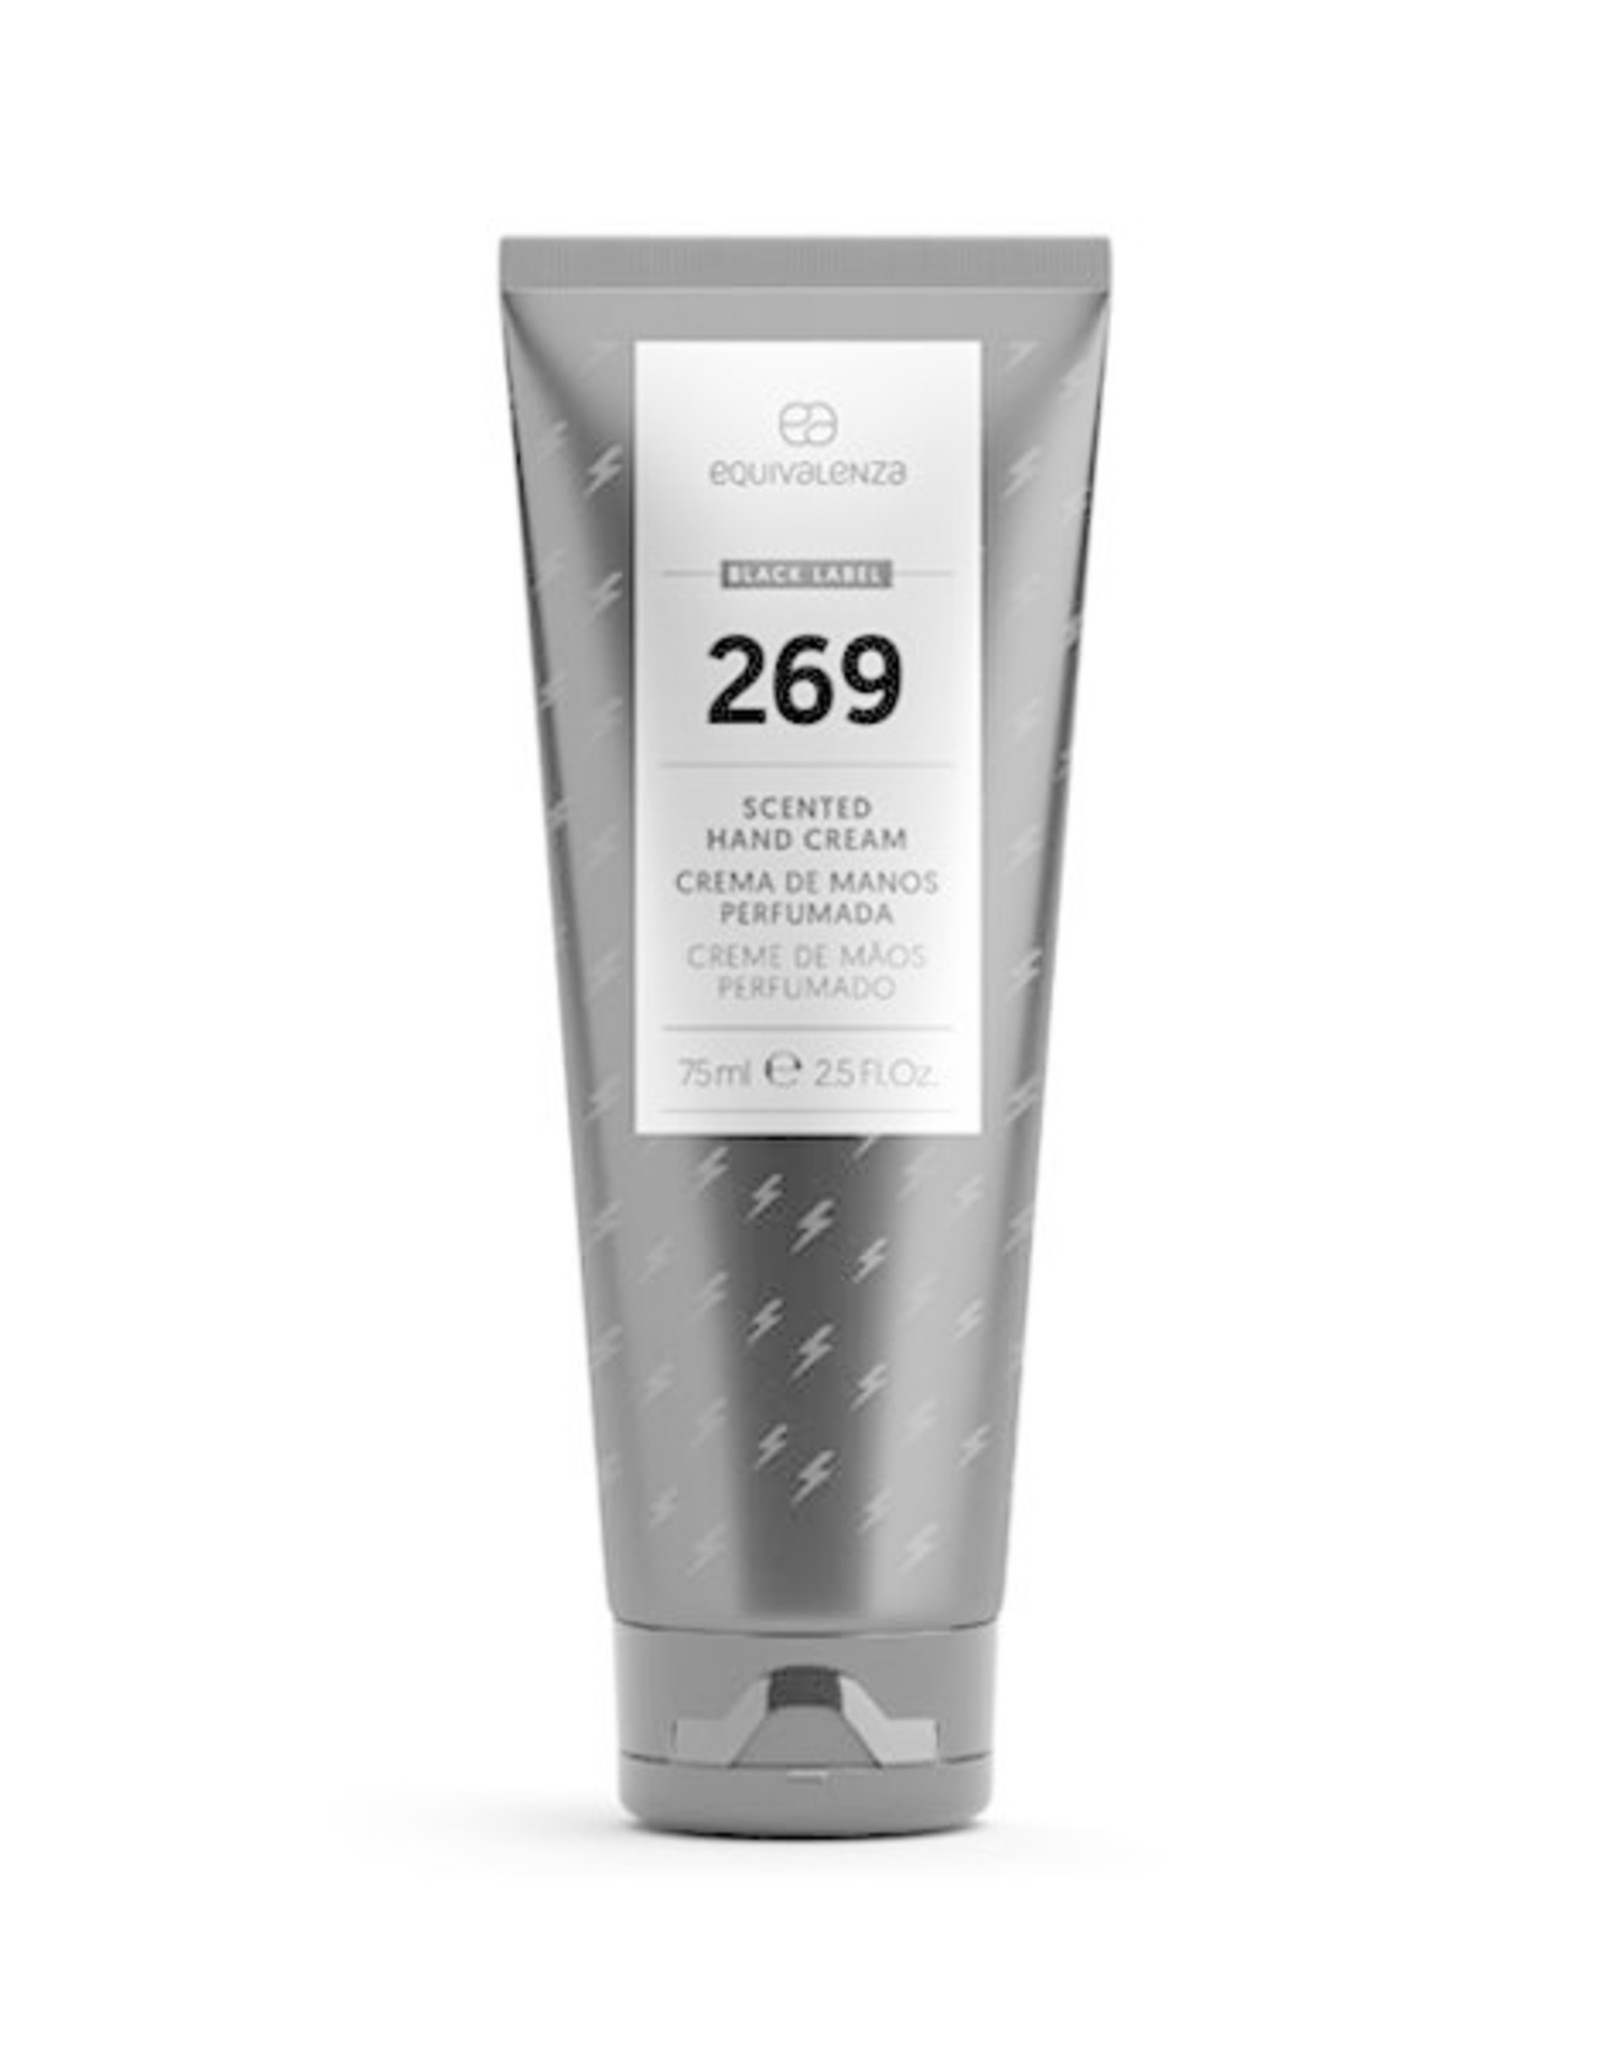 Equivalenza Black Label Hand Cream 269